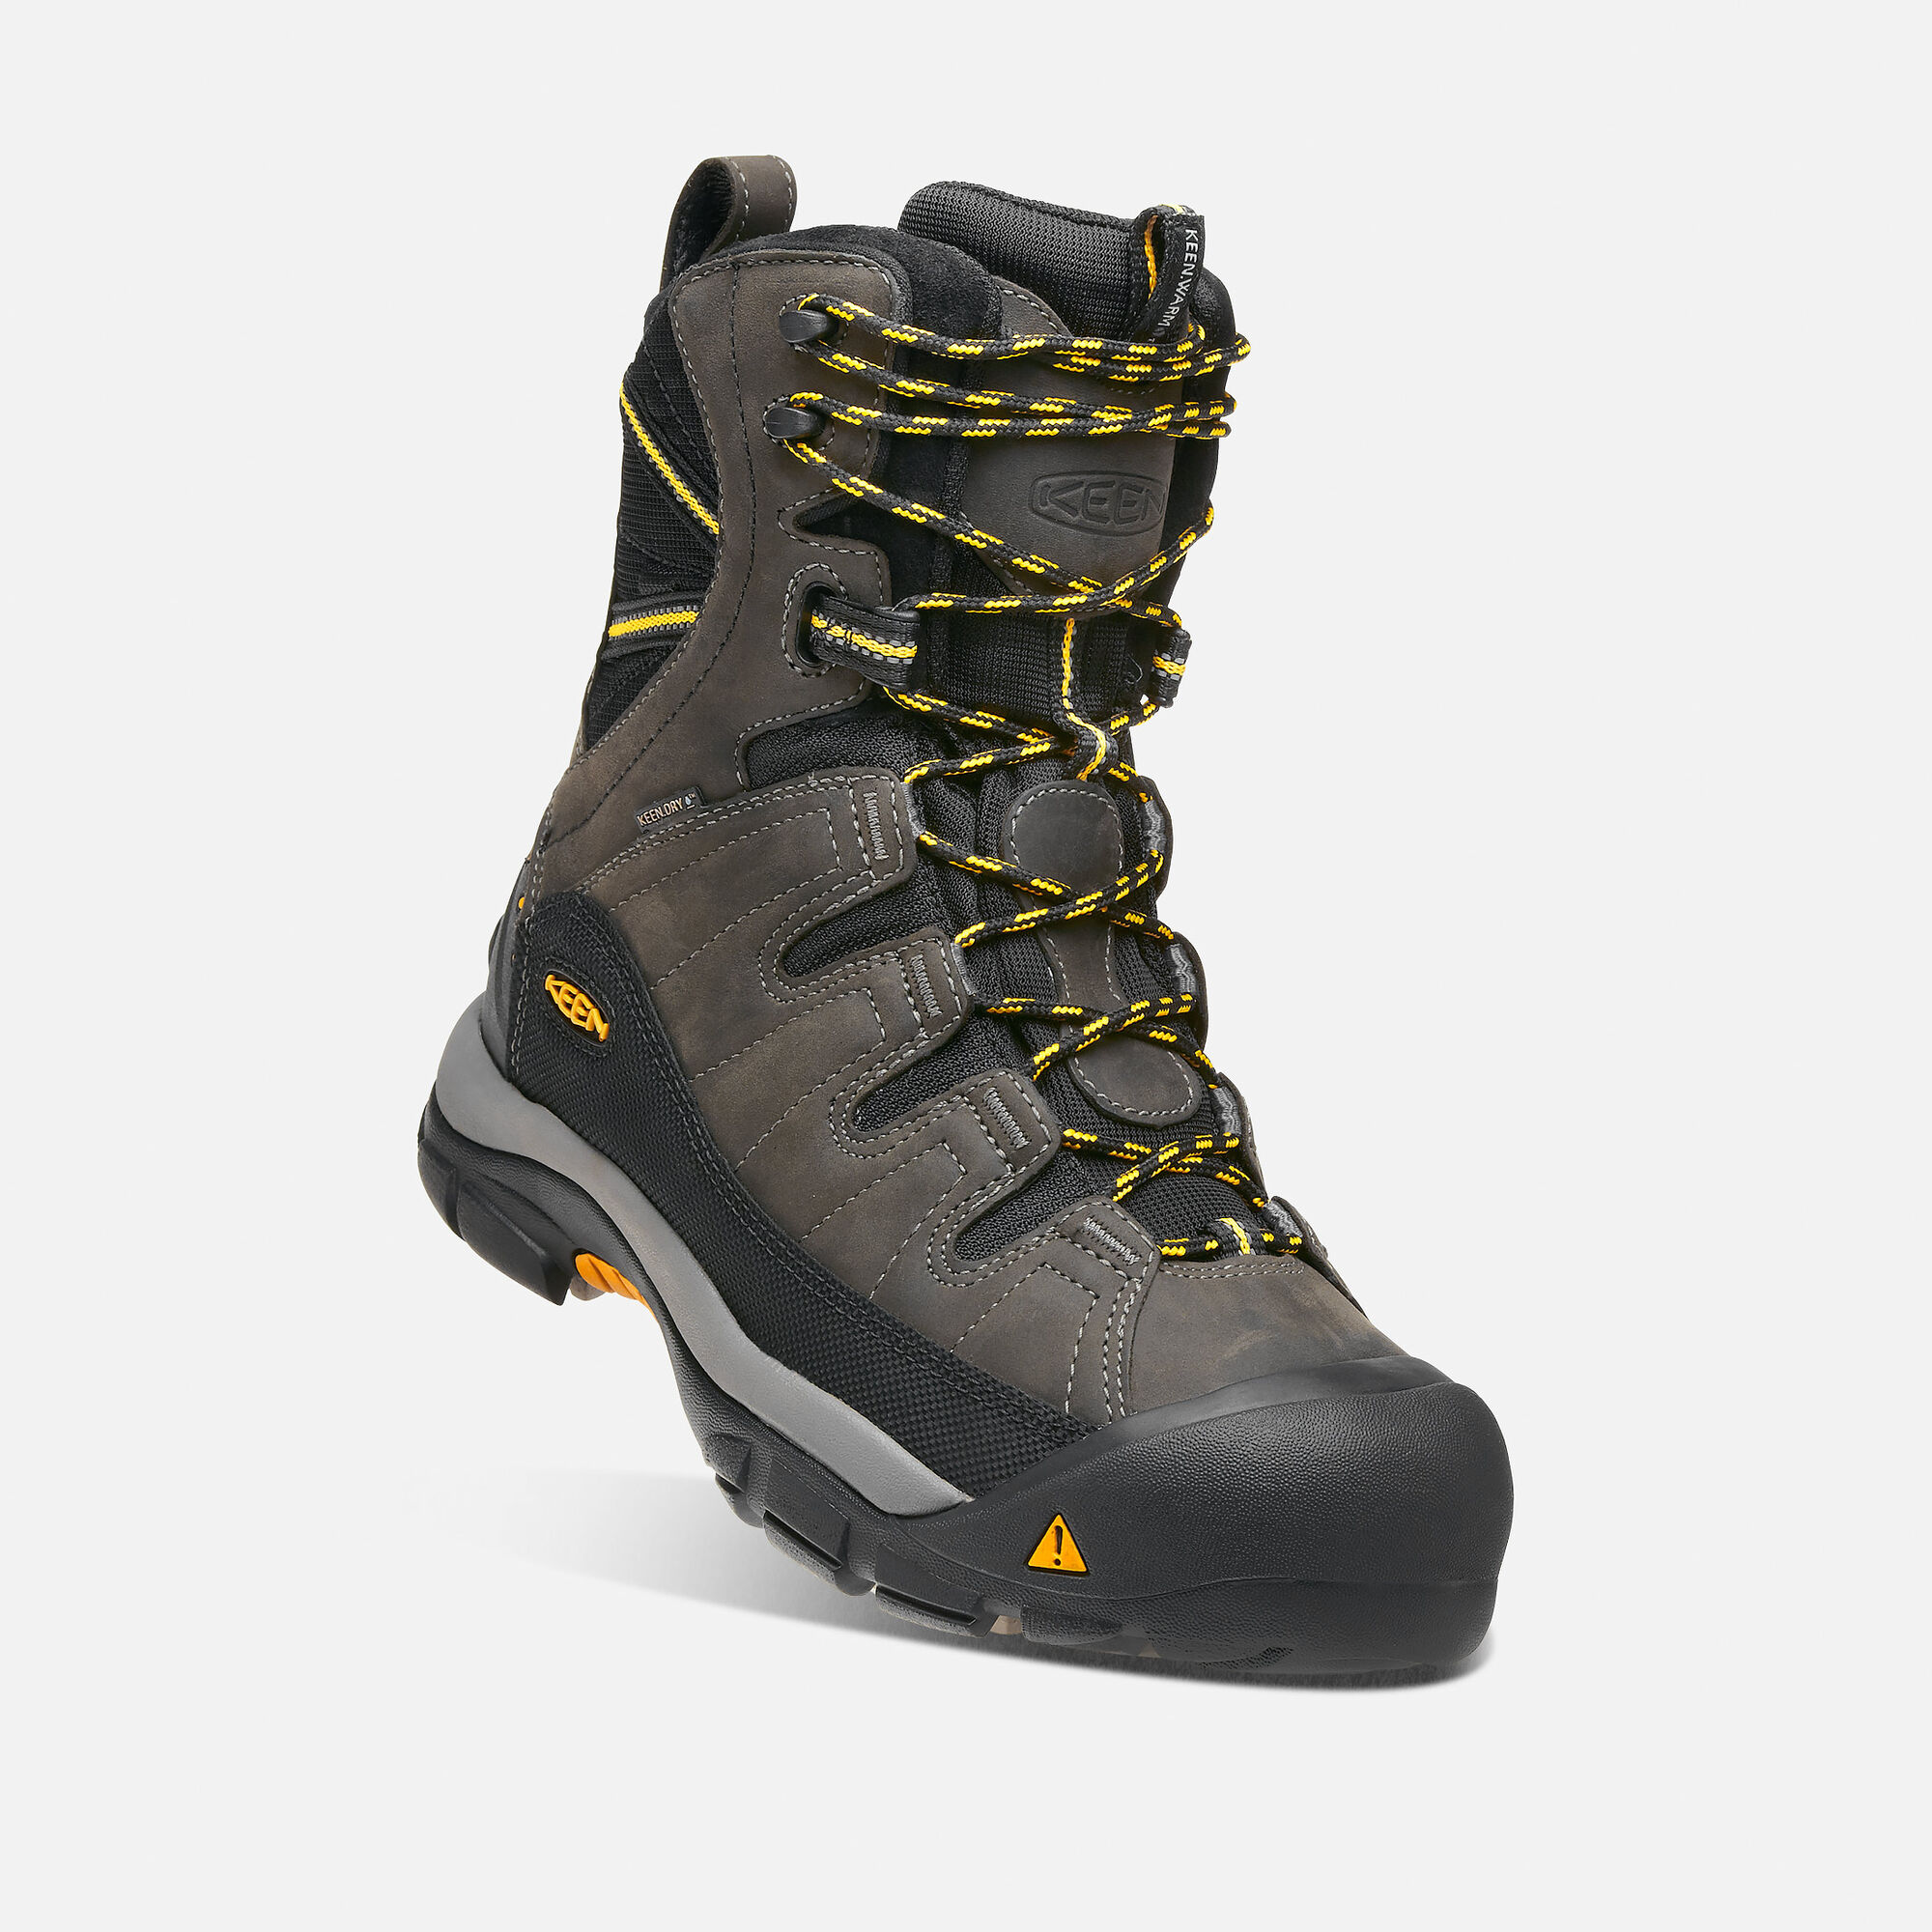 44a62150878 Men's Summit County Waterproof Boot in Dark Shadow/Yellow - small view.